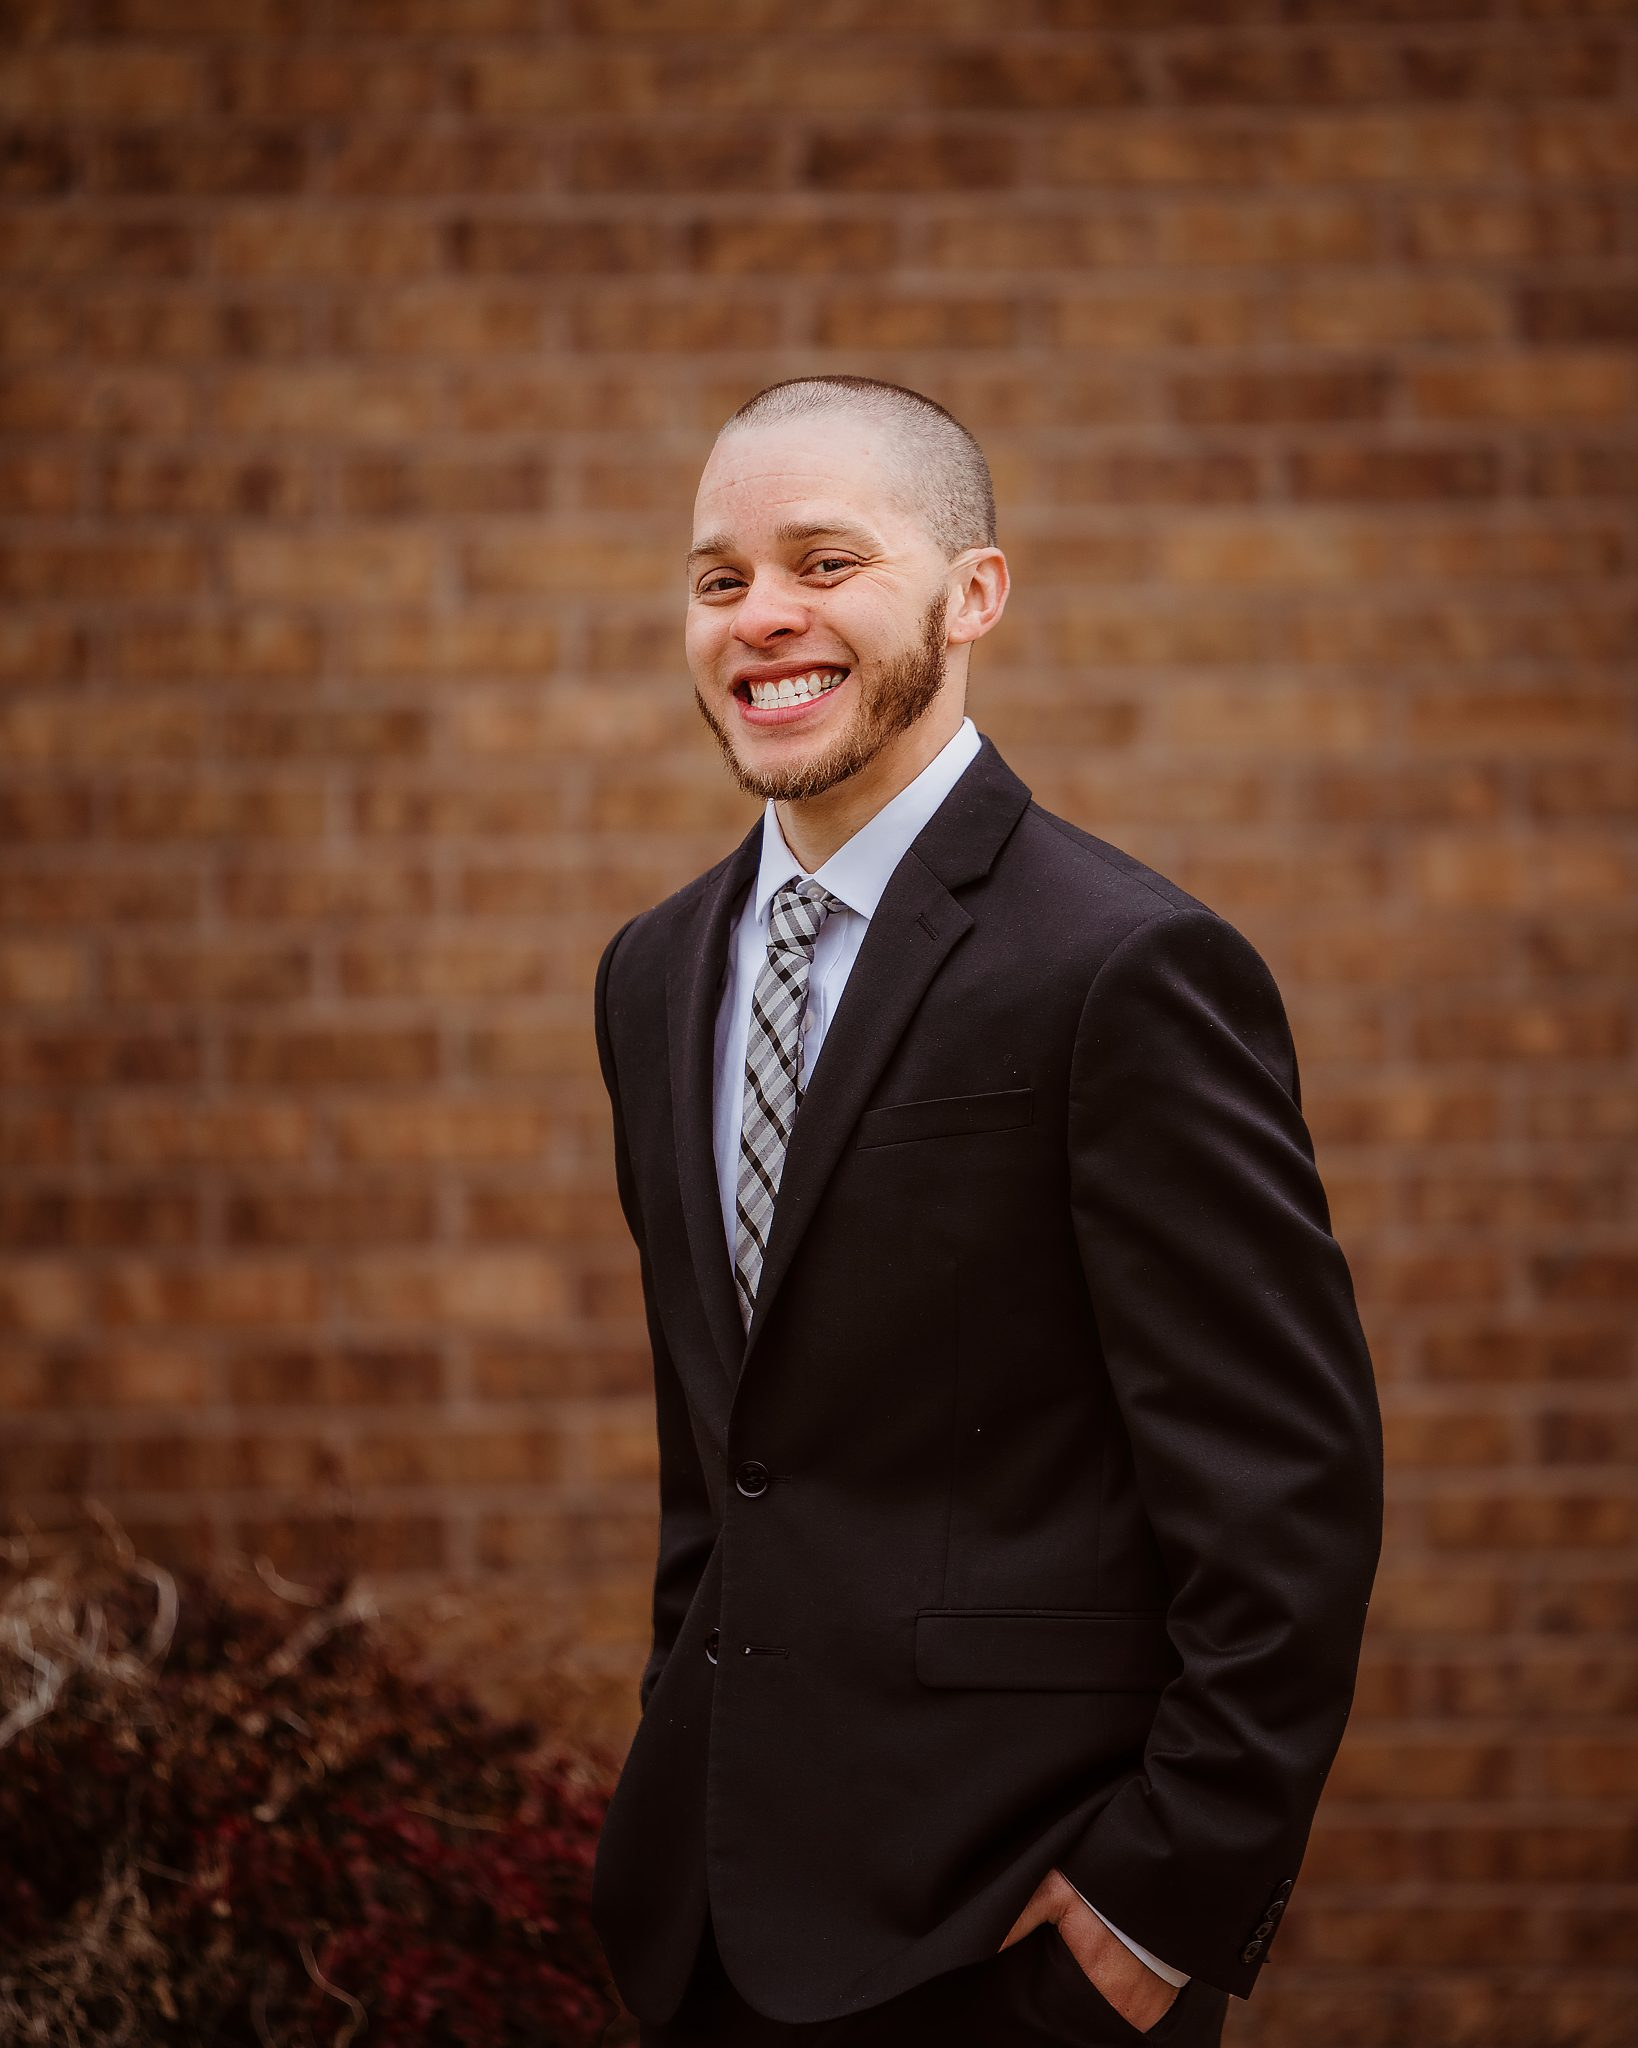 Jordan has been with JJT for 5 years and is the Team Lead for the Omaha Brokerage department. He has a bachelor's degree in Criminal Justice and a master's degree in Clinical Counseling. Prior to JJT, he worked in the Criminal Justice and Mental Health career fields. Outside of work he enjoys spending time with his family, watching